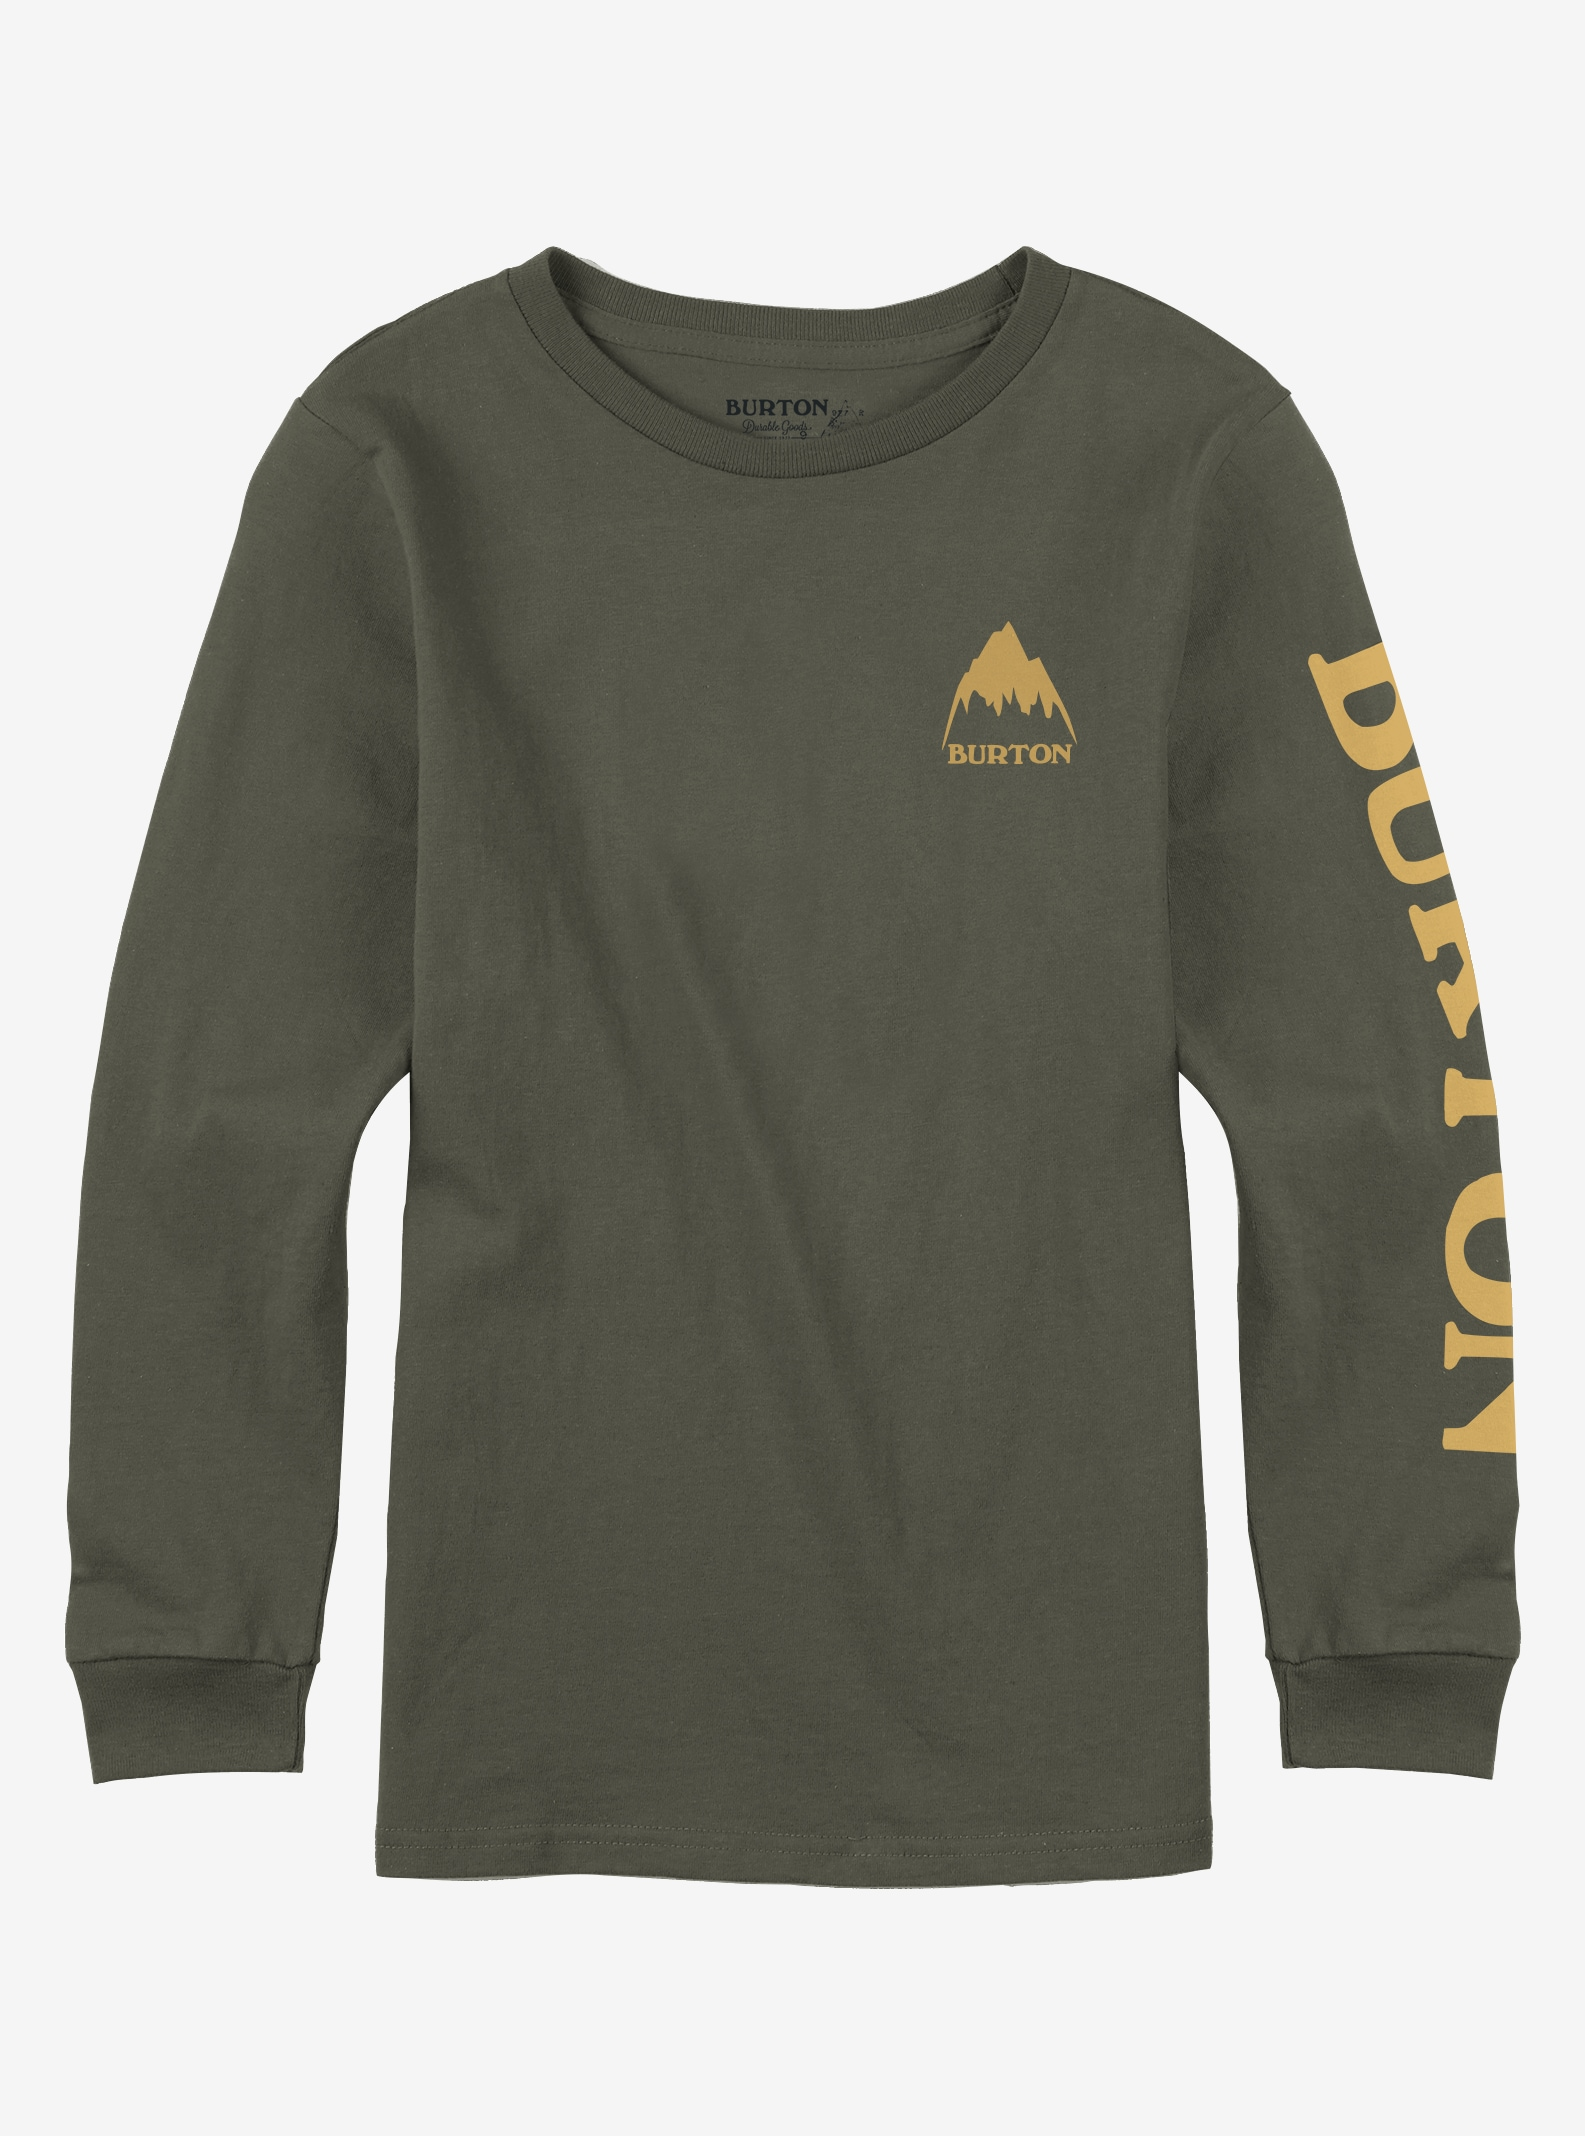 Boys' Burton Elite Long Sleeve T Shirt shown in Dusty Olive